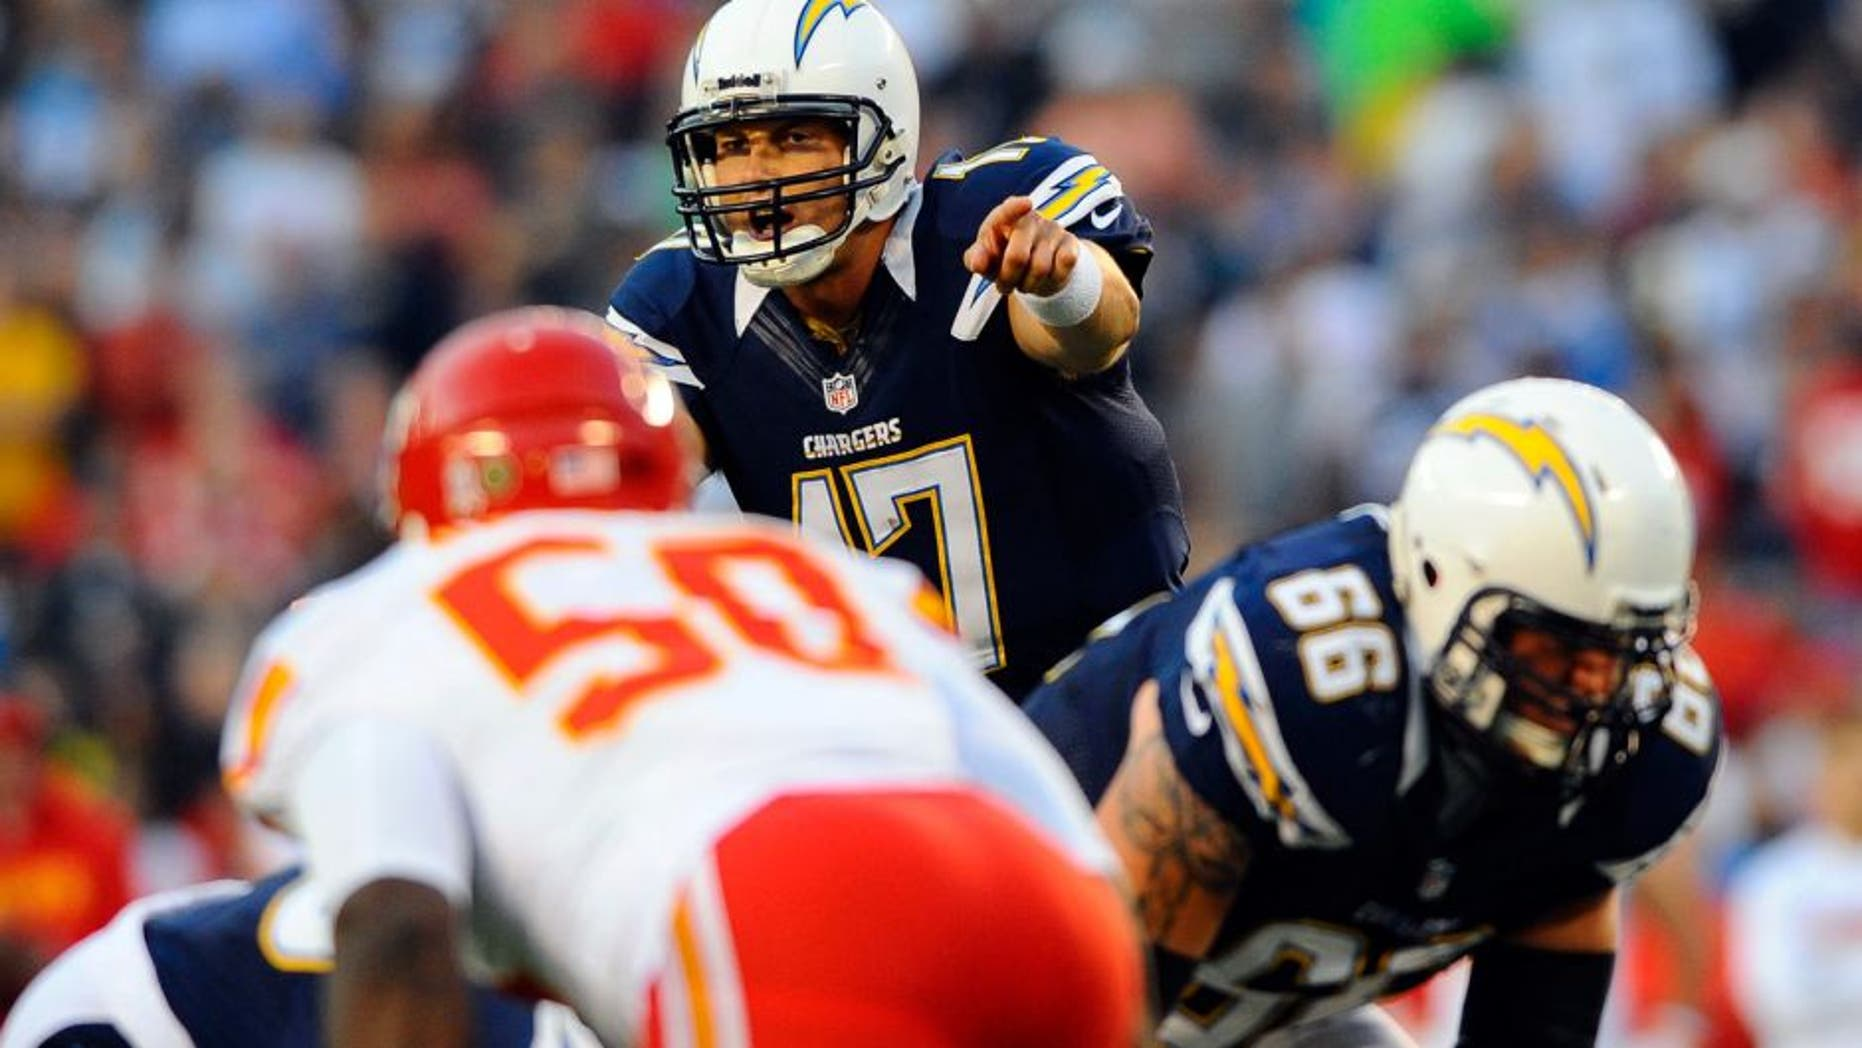 November 1, 2012; San Diego, CA, USA; San Diego Chargers quarterback Philip Rivers (17) calls plays at the line during the first quarter against the Kansas City Chiefs at Qualcomm Stadium. Mandatory Credit: Christopher Hanewinckel-USA TODAY Sports